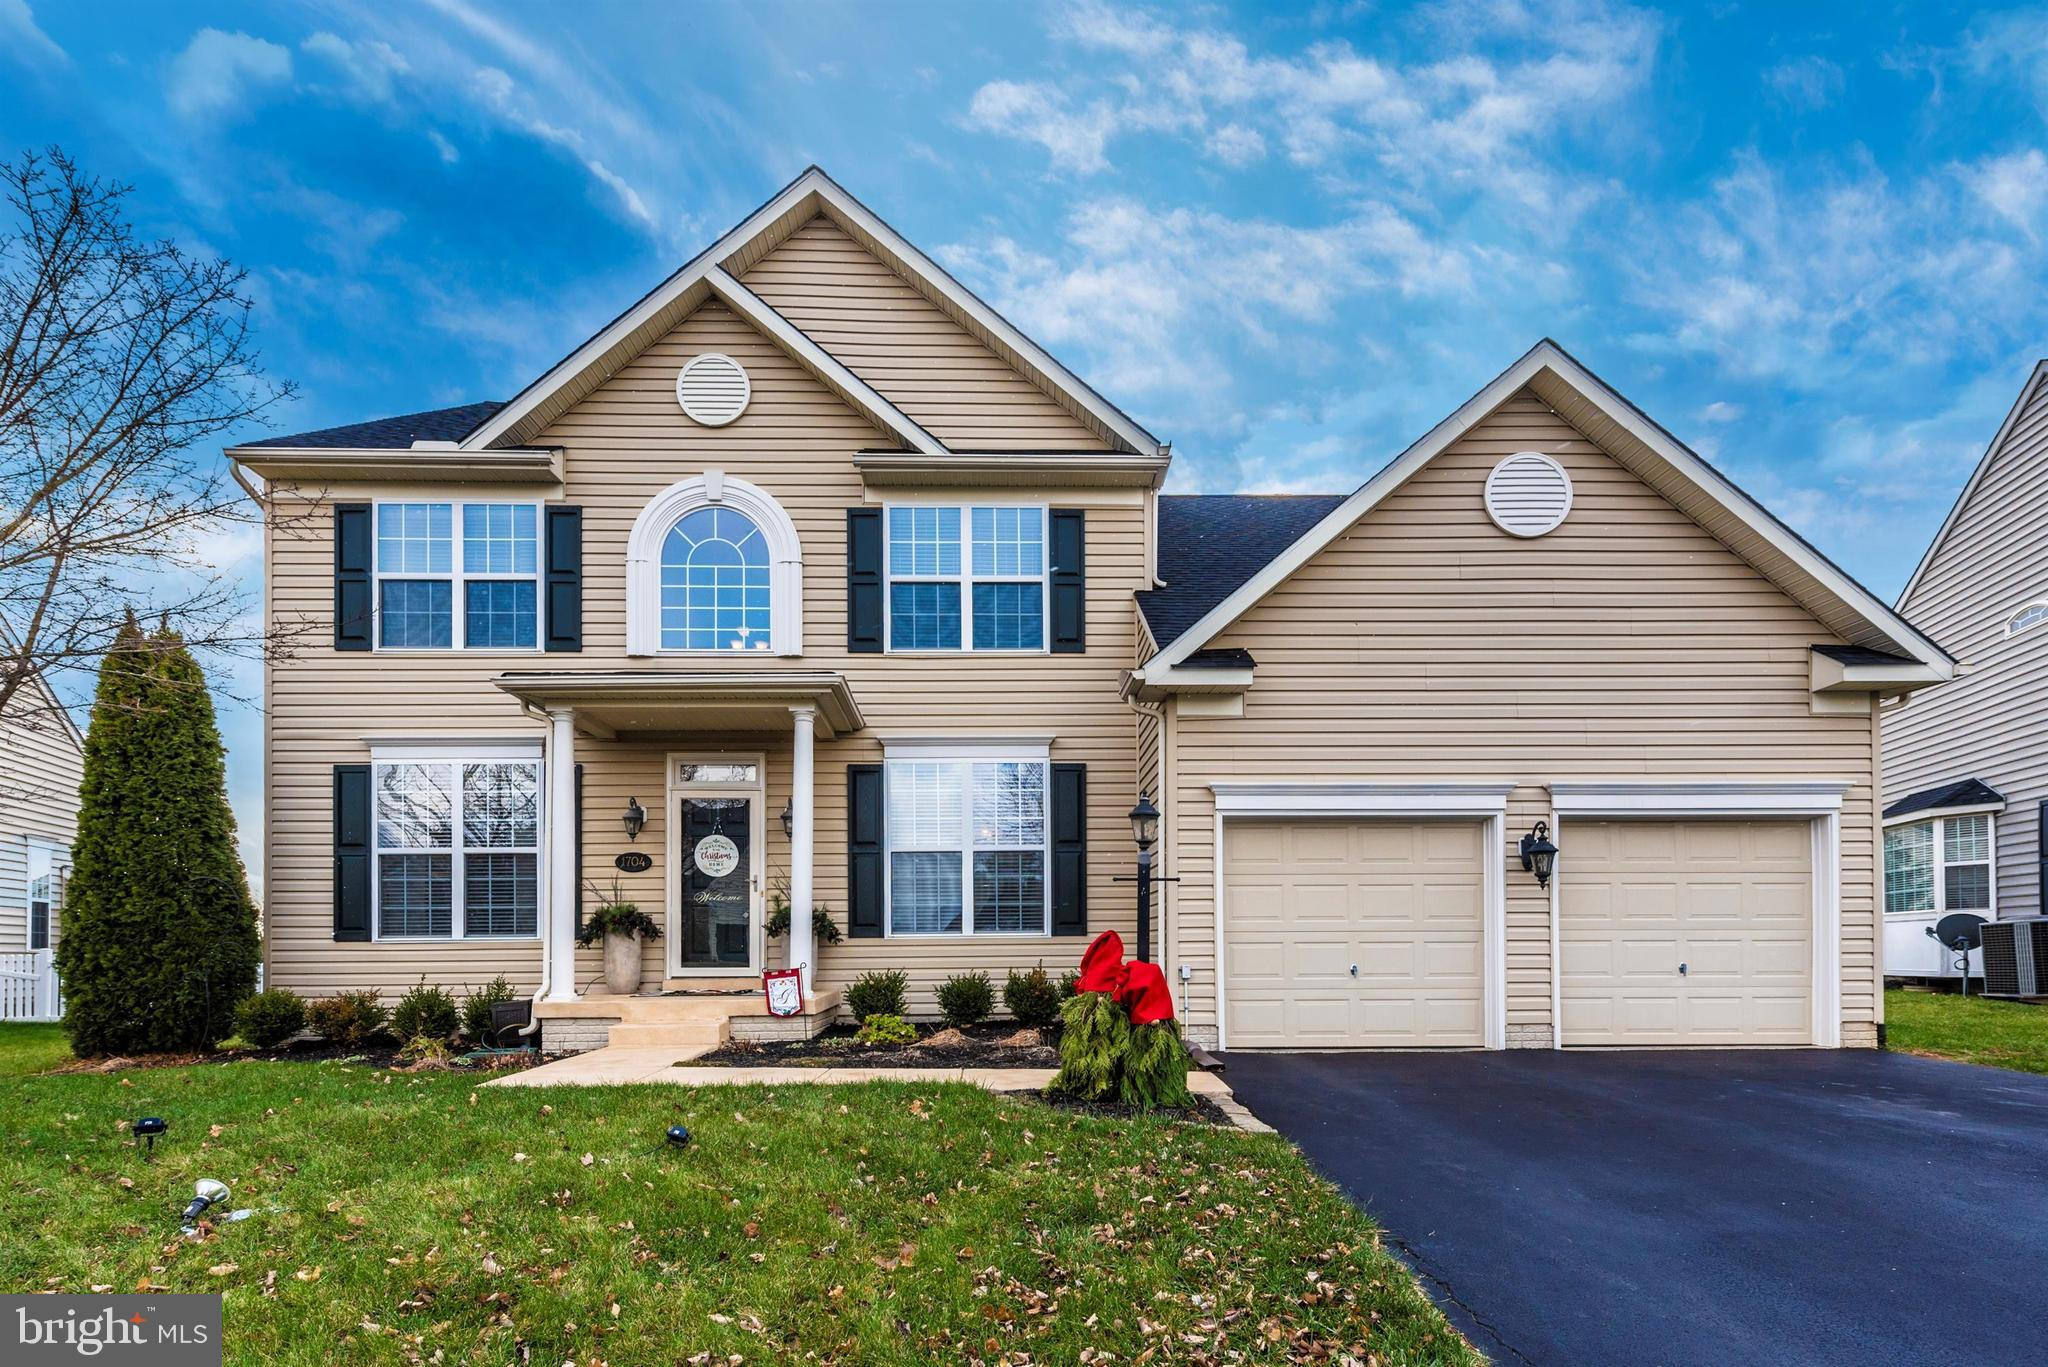 1704 CANAL RUN DRIVE, POINT OF ROCKS, MD 21777